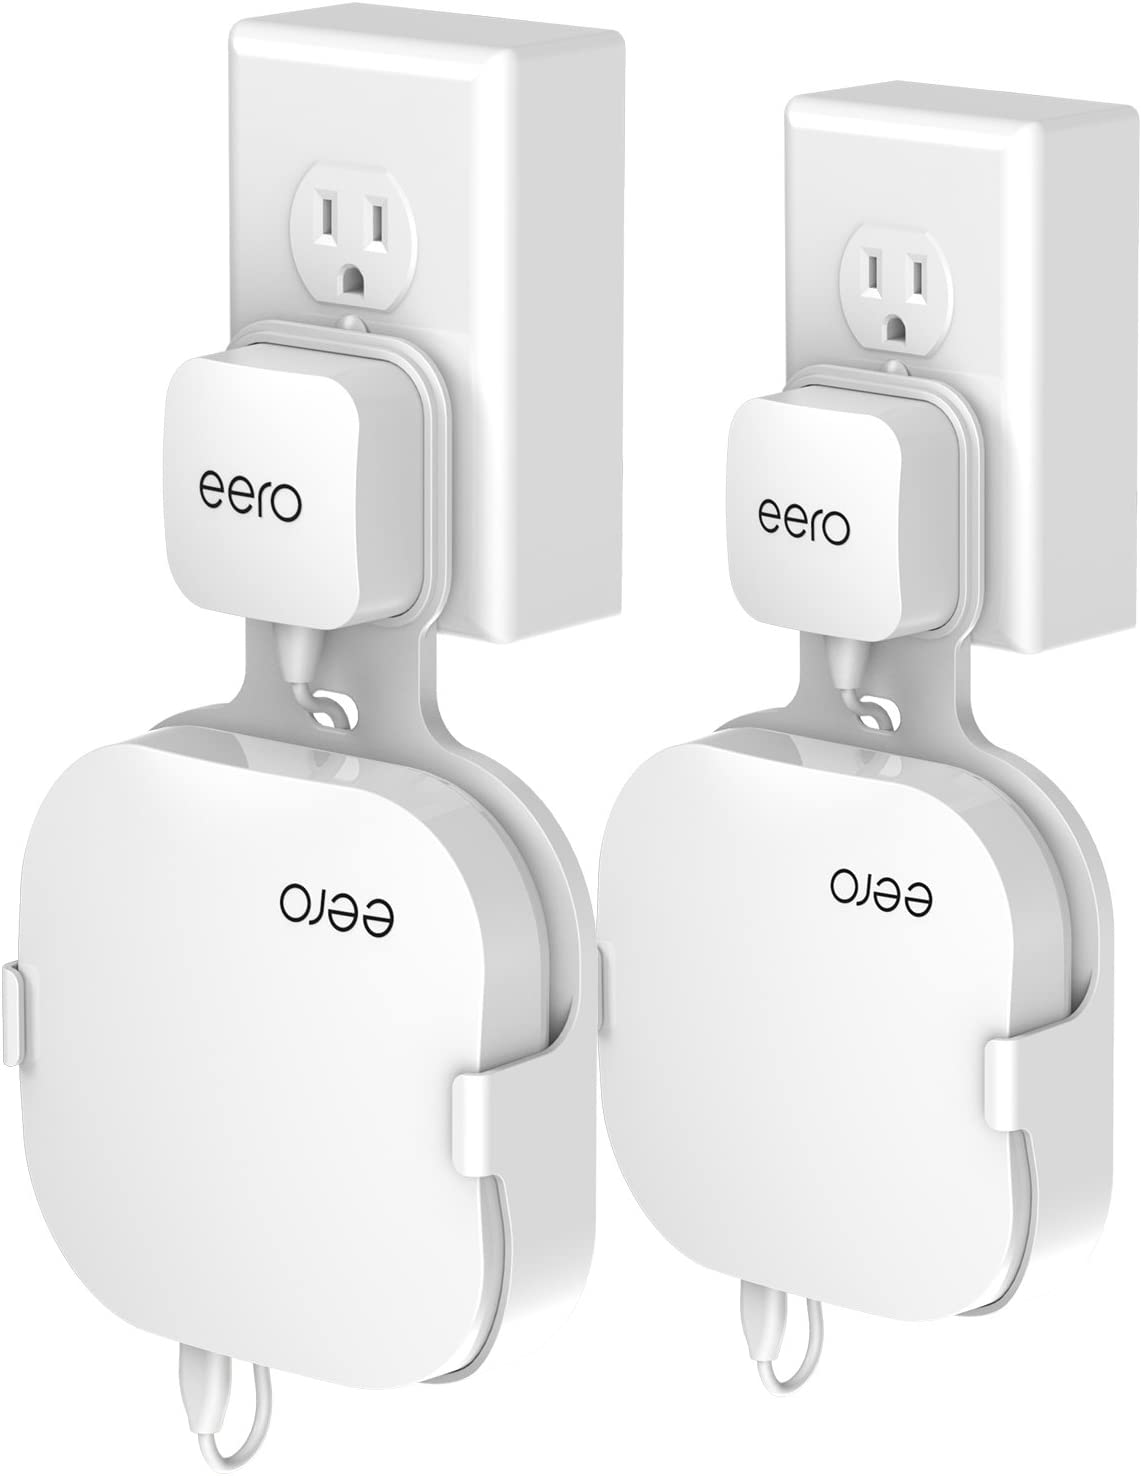 Wall Mount for eero Home WiFi and eero Pro WiFi Reinforced 3 Pack Enlarging Coverage Outlet Holder Stand Bracket for eero Pro and eero Home WiFi System Router